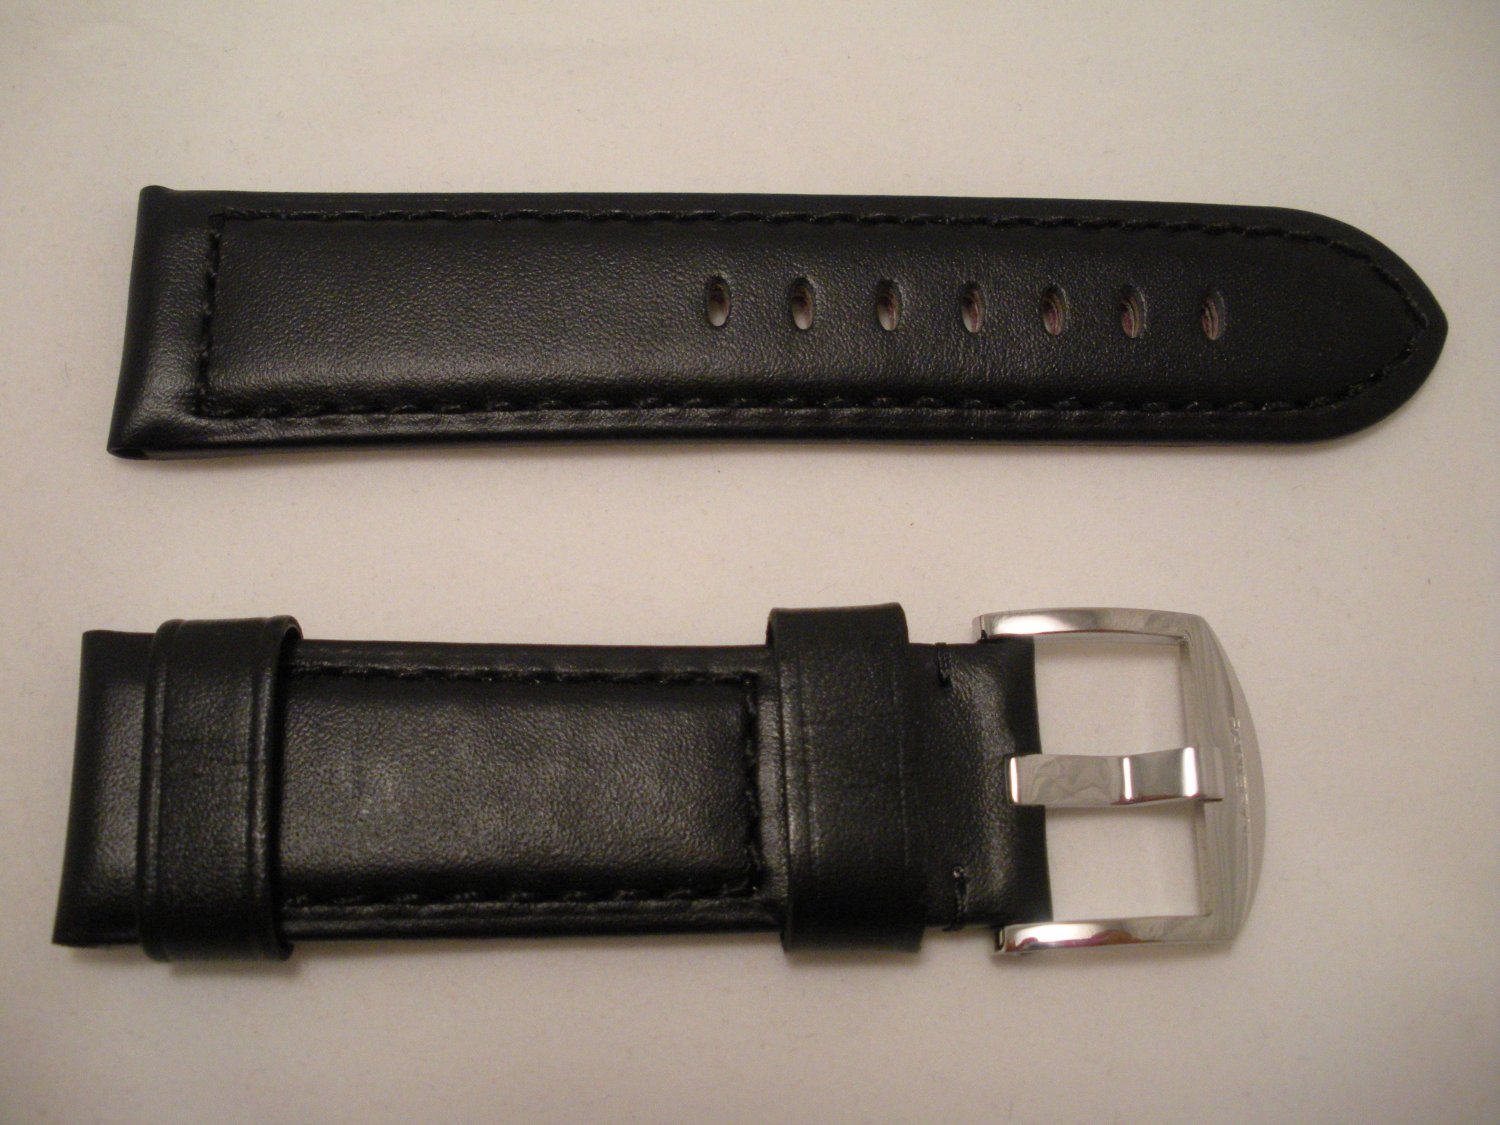 24mm Flat Black Leather Strap w/ Buckle for Panerai